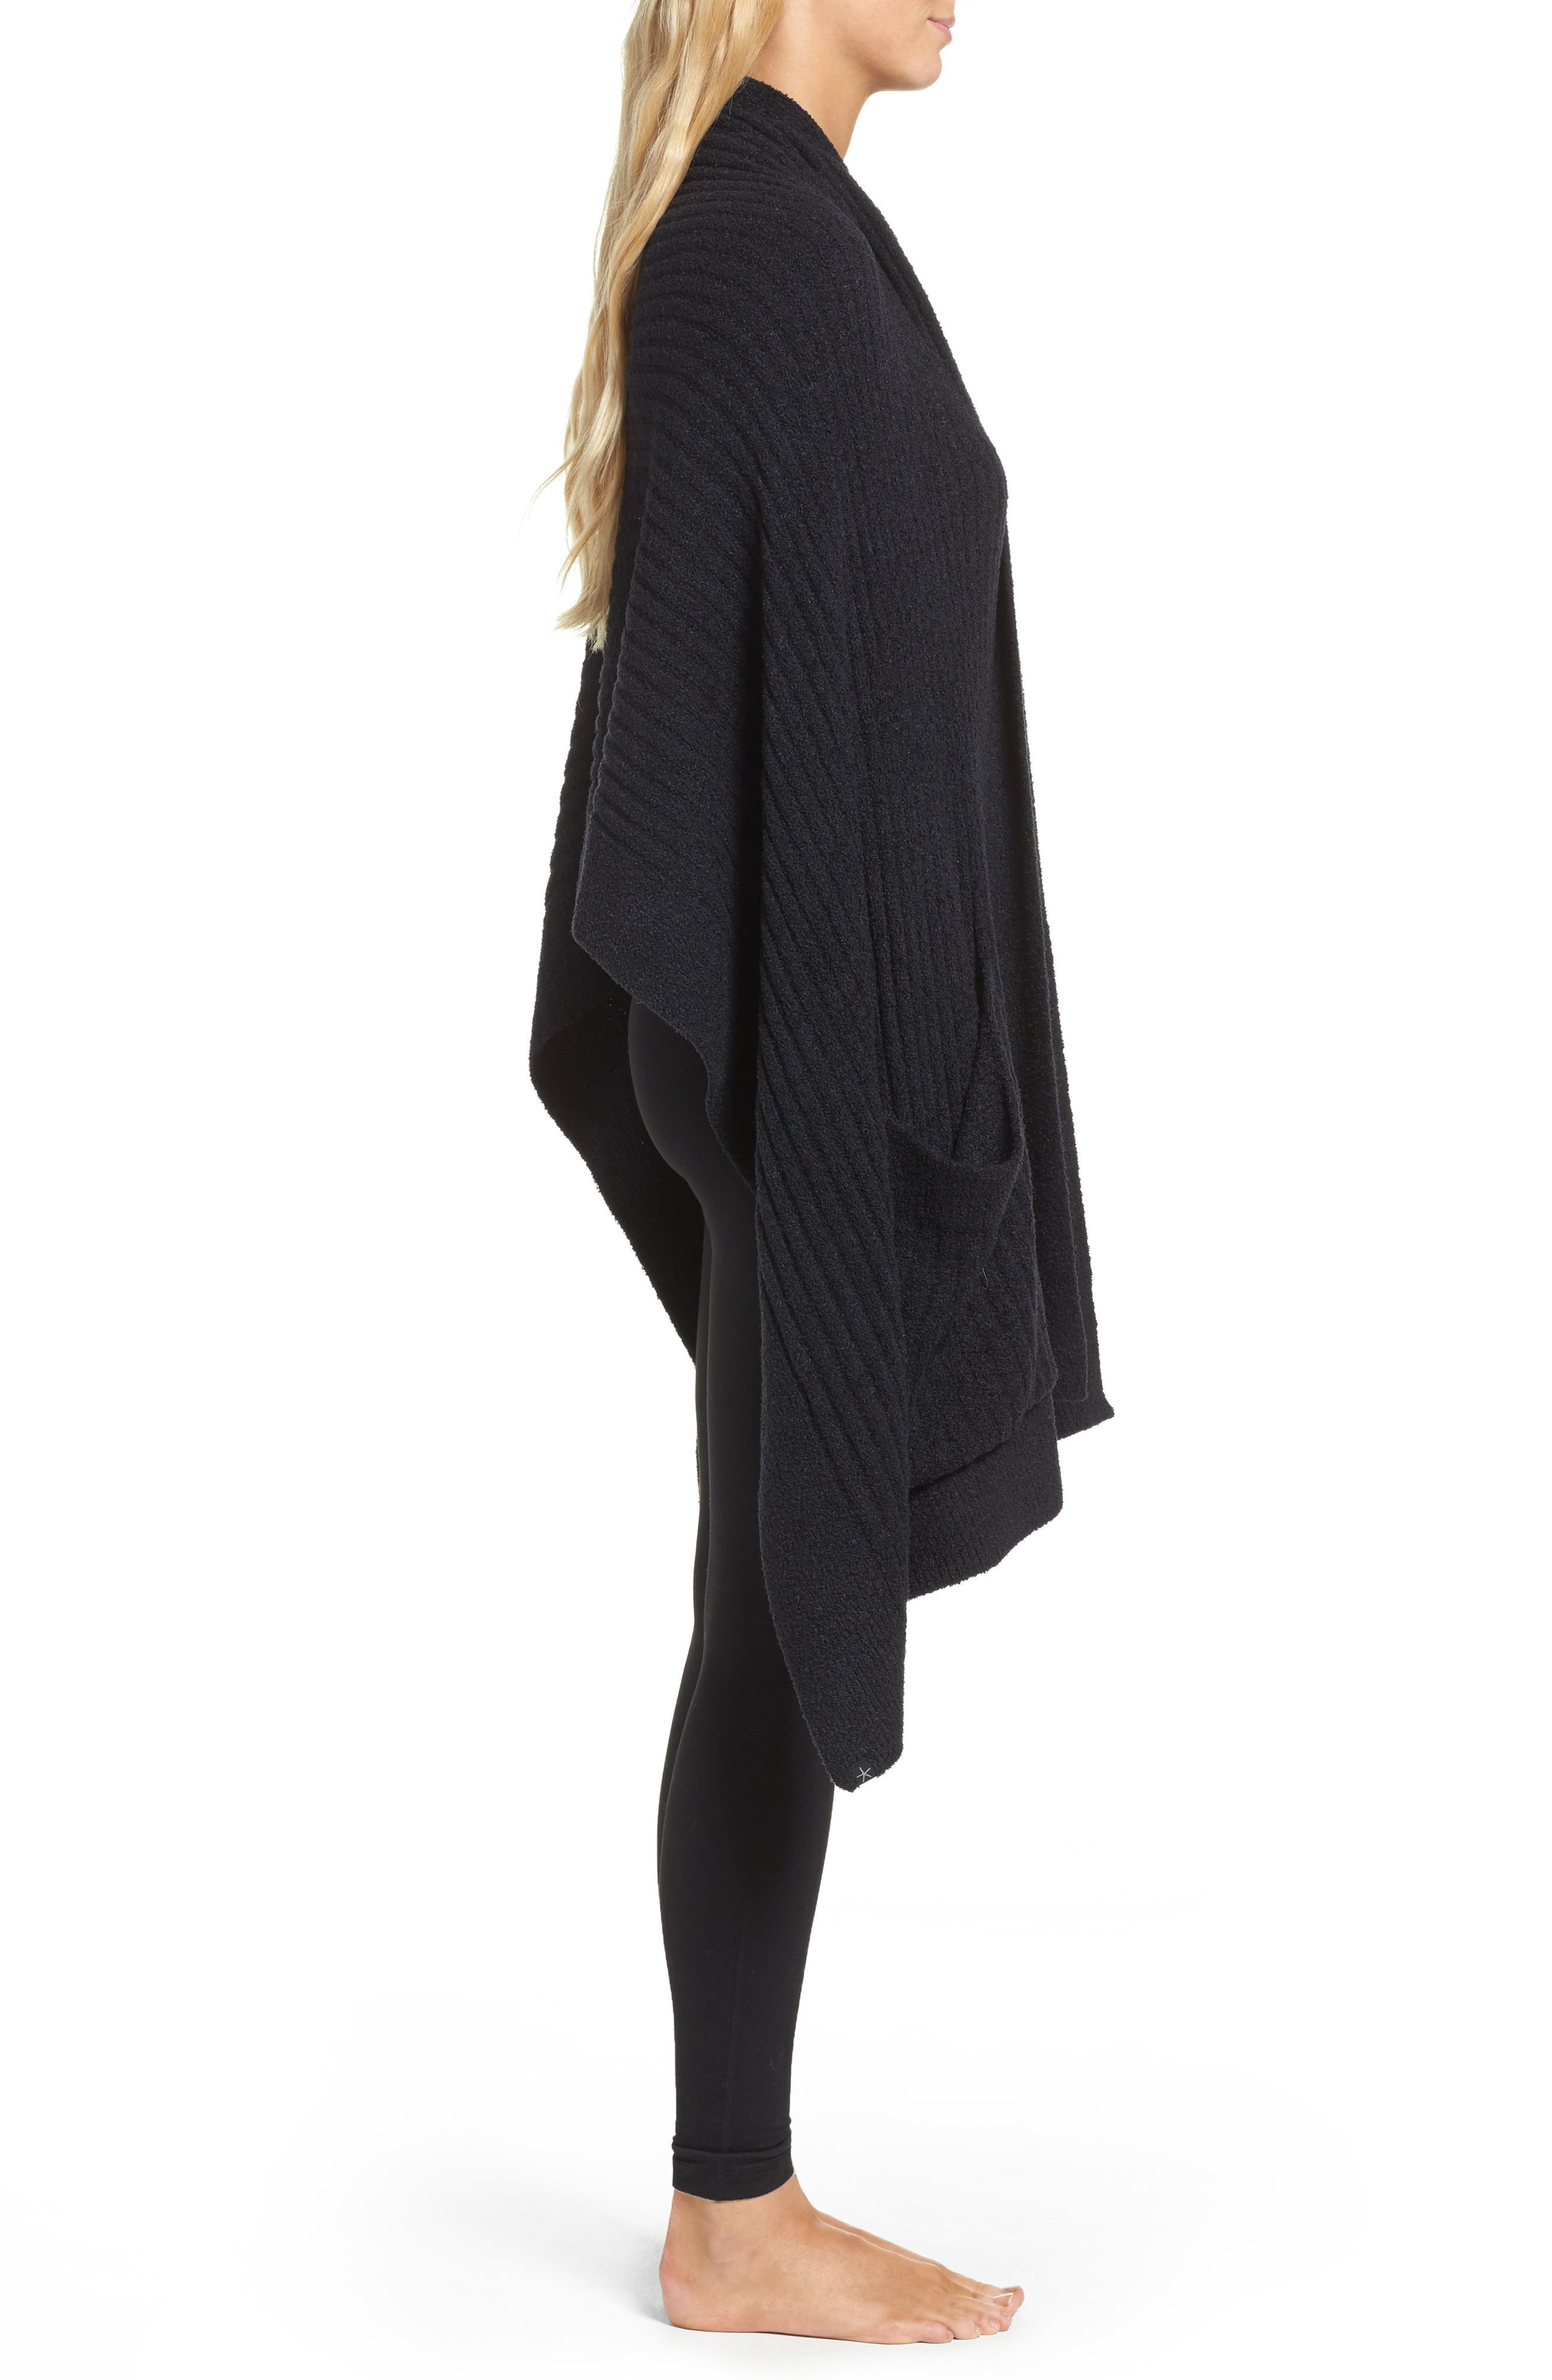 Cozychic Lite<sup>®</sup> Travel Shawl,                             Alternate thumbnail 3, color,                             Midnight